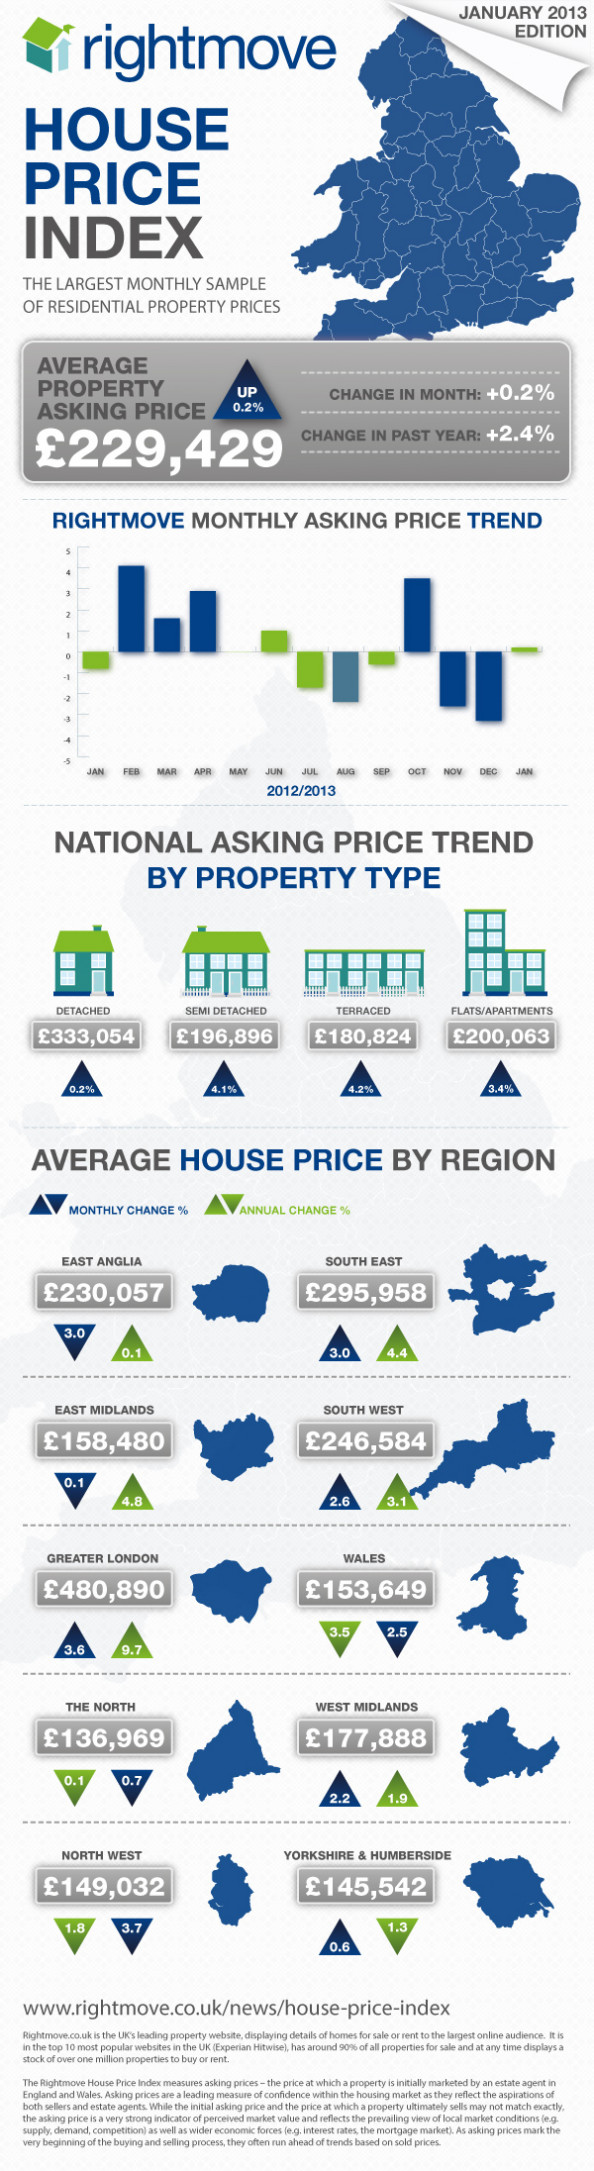 Rightmove HOUSE PRICE INDEX - JAN 2013 Infographic